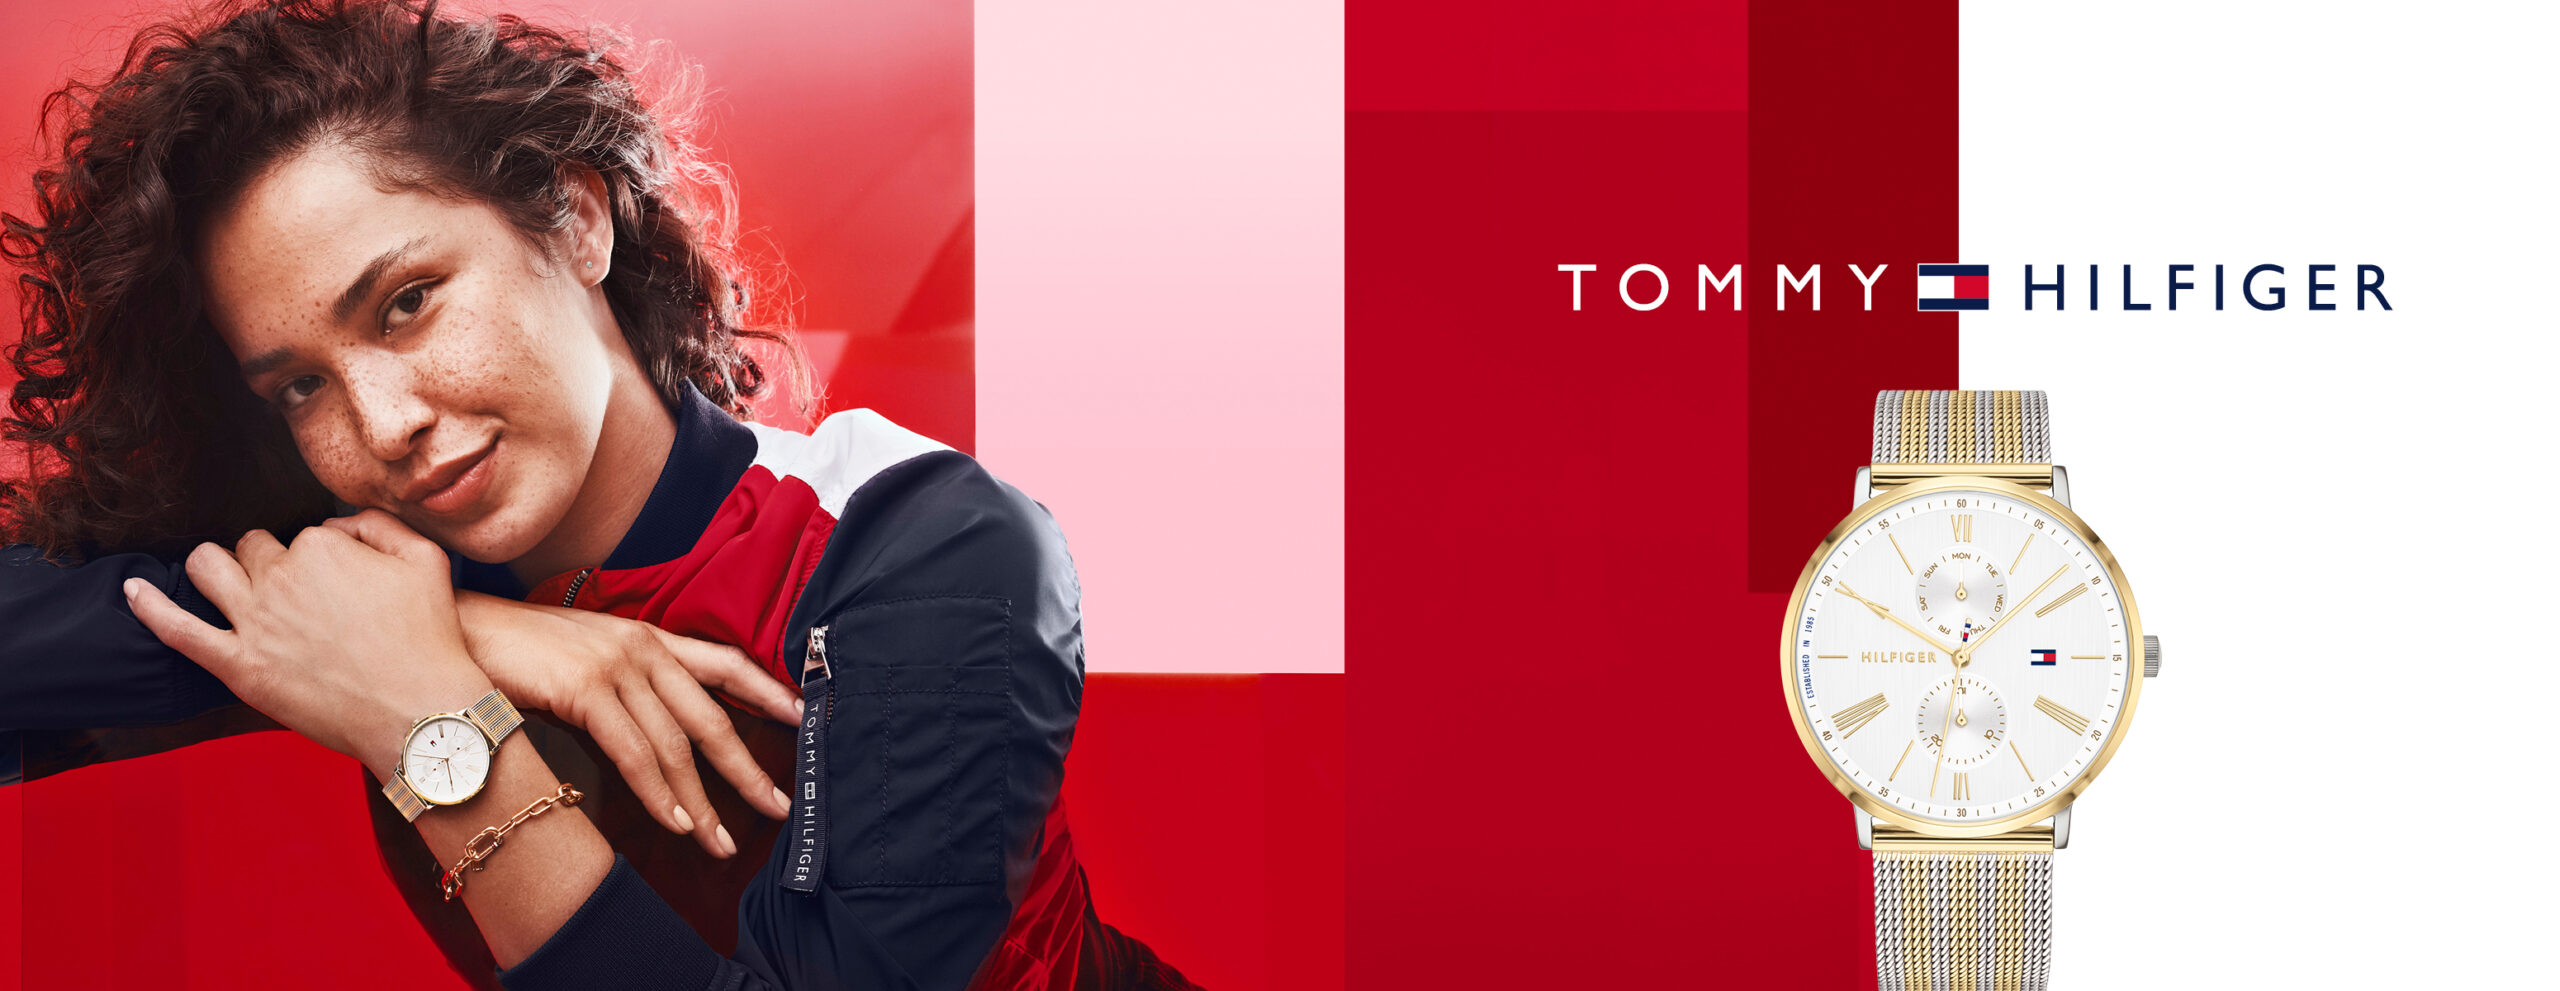 20190401141210_tommy-hilfiger-desktop-banner-3100×1200-th-ss19_2-jpg-2